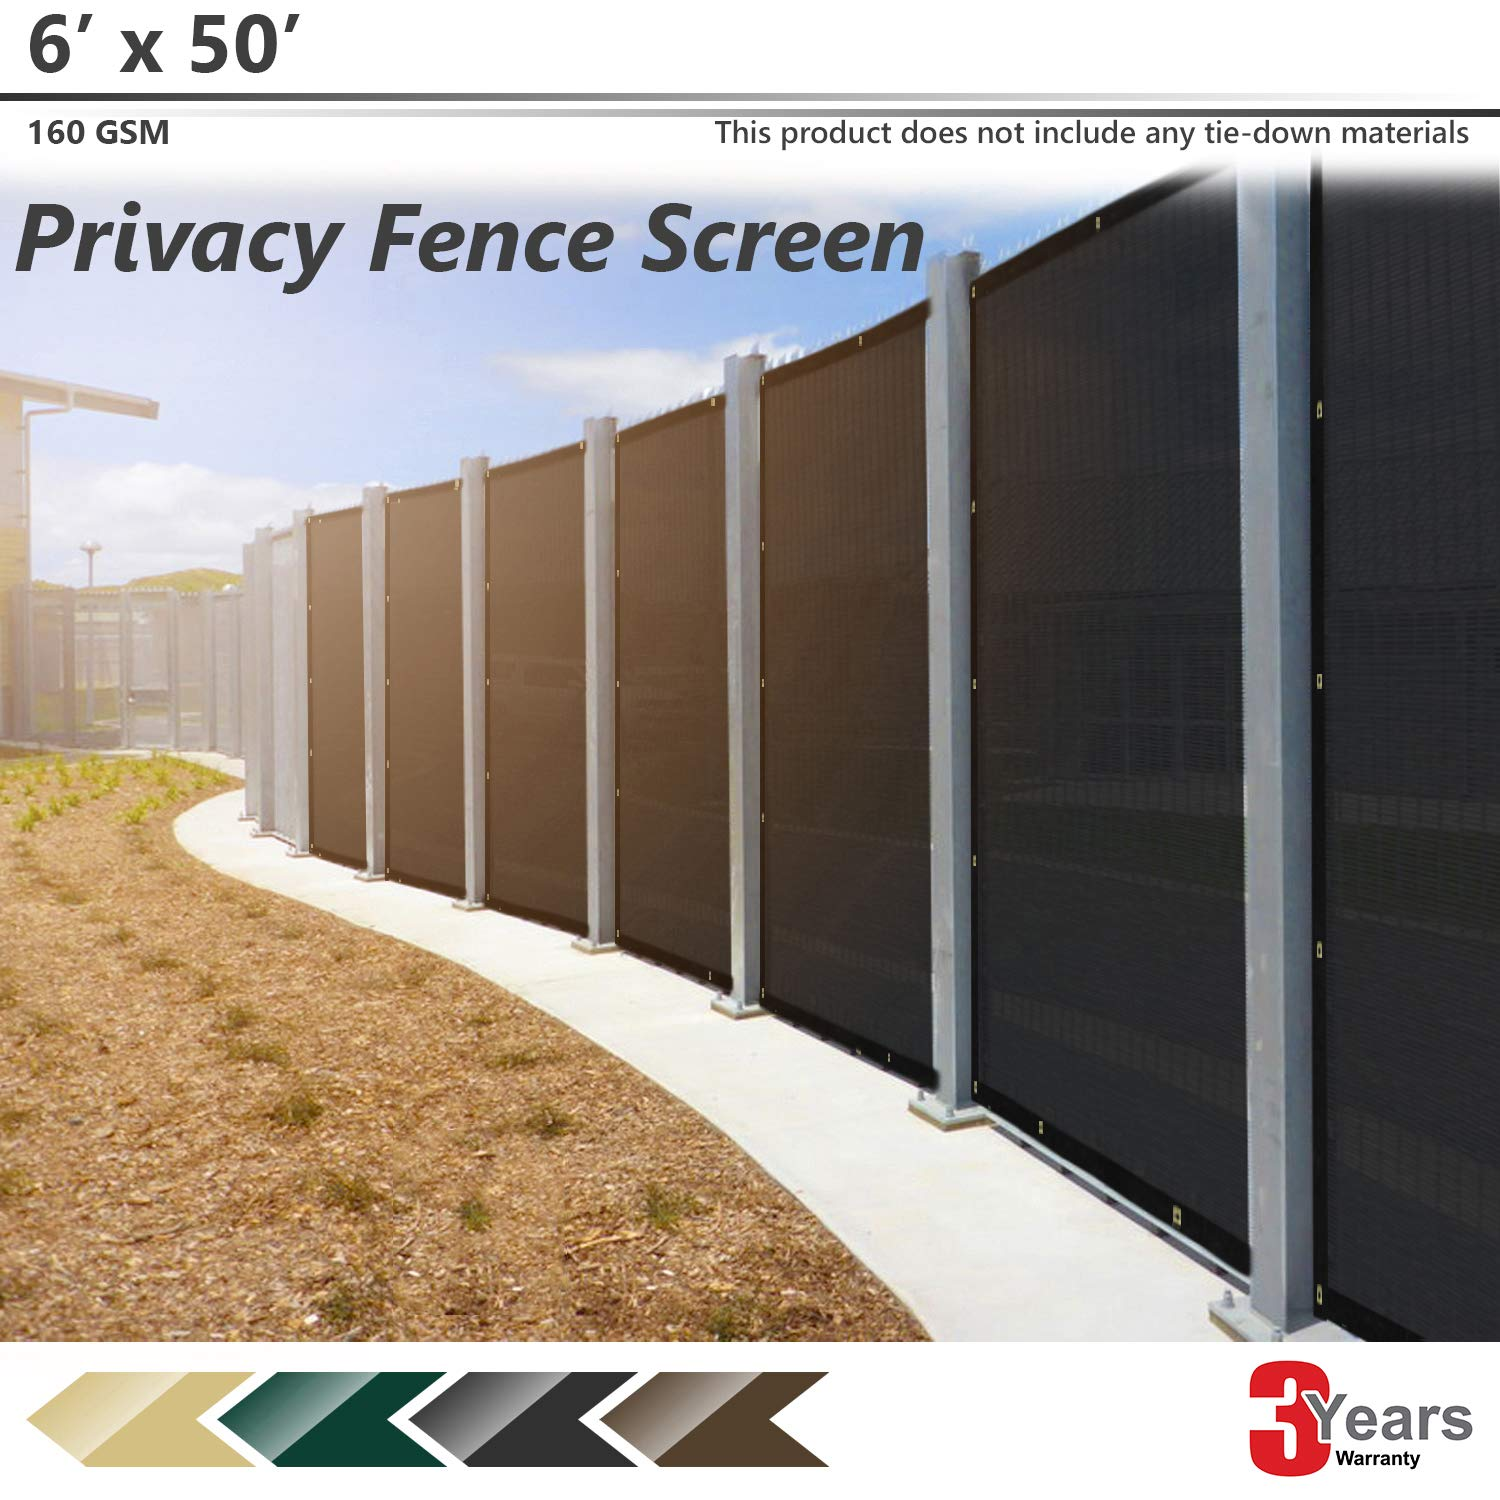 BOUYA Black Privacy Fence Screen 6' x 50' Heavy Duty for Chain-Link Fence Privacy Screen Commercial Outdoor Shade Windscreen Mesh Fabric with Brass Gromment 160 GSM 88% Blockage UV -3 Years Warranty